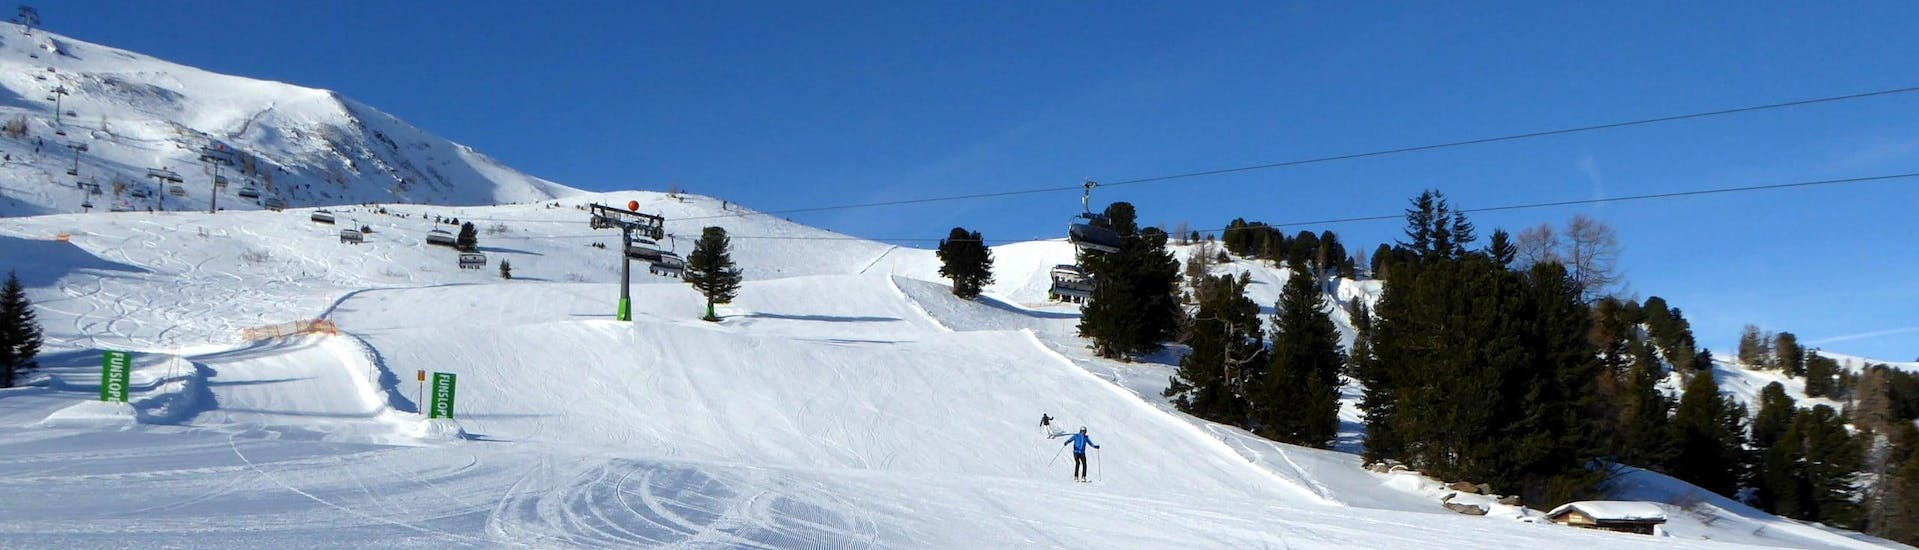 View over the sunny mountain landscape while learning to ski with the ski schools on the Turracher Höhe.